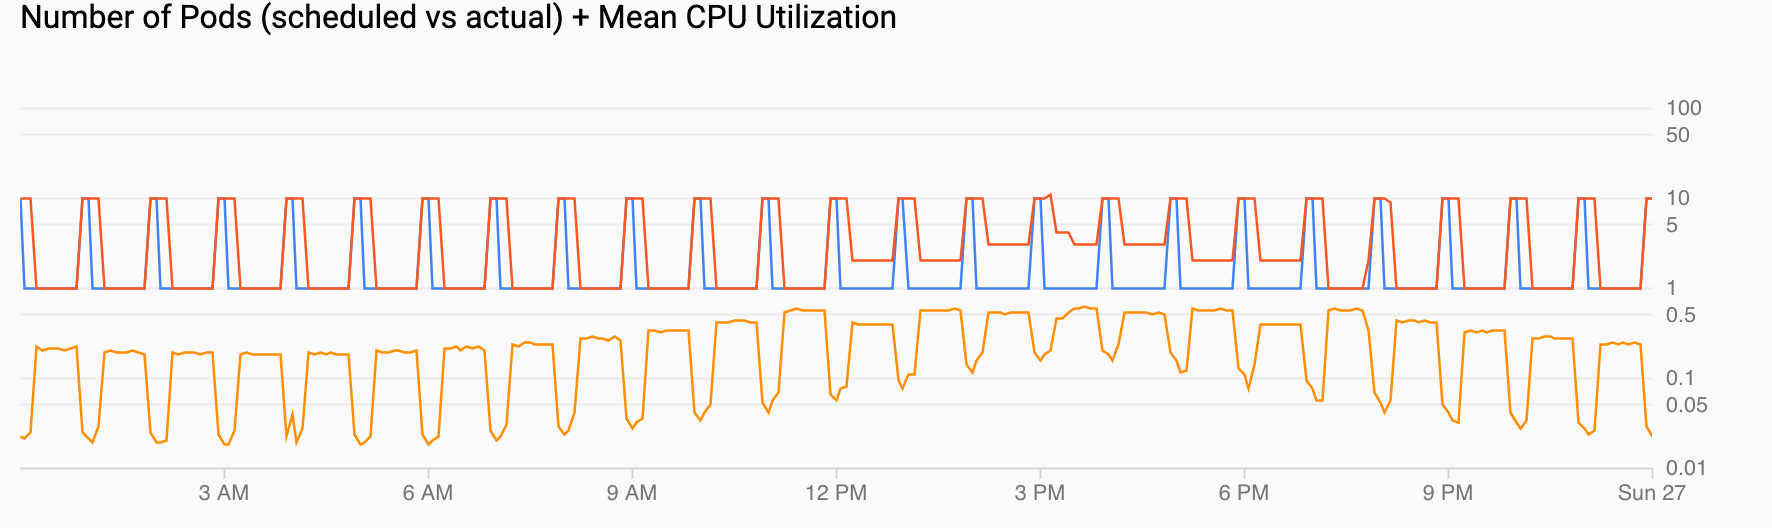 2 graphs. One shows demand for Pods with demand spiking every hour. The other shows that CPU utilization goes up and down, but tops off at the configured high value.